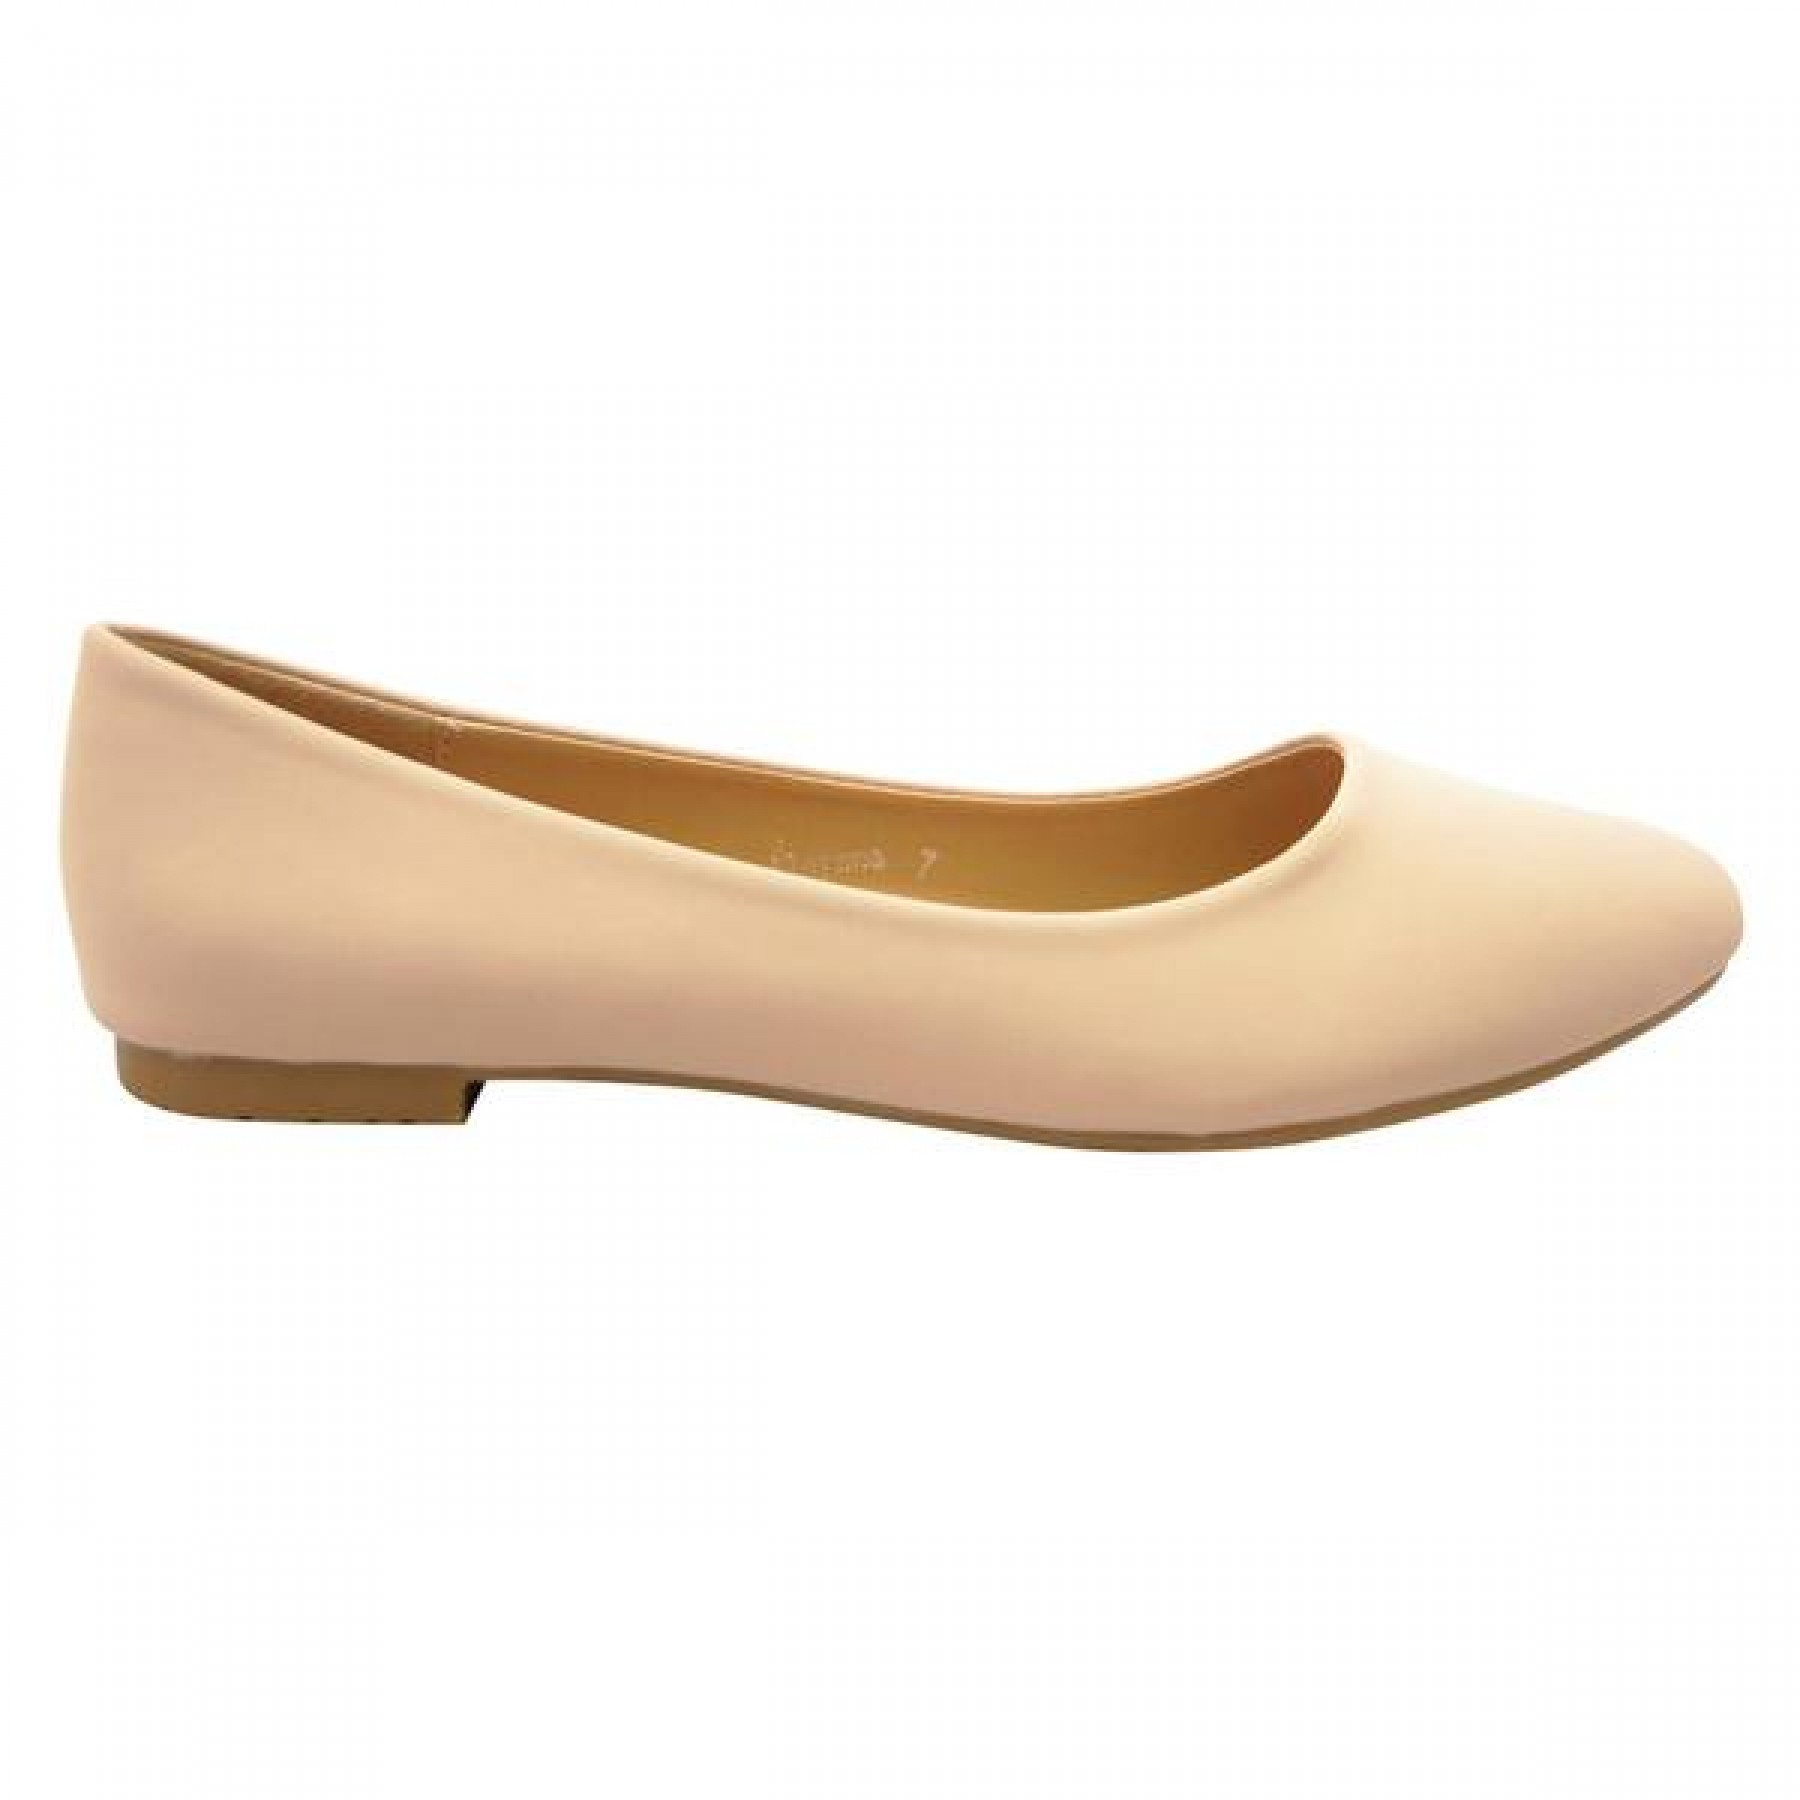 Women's Nude Alaynna Smooth Pump Flat with Gently Pointed Toe